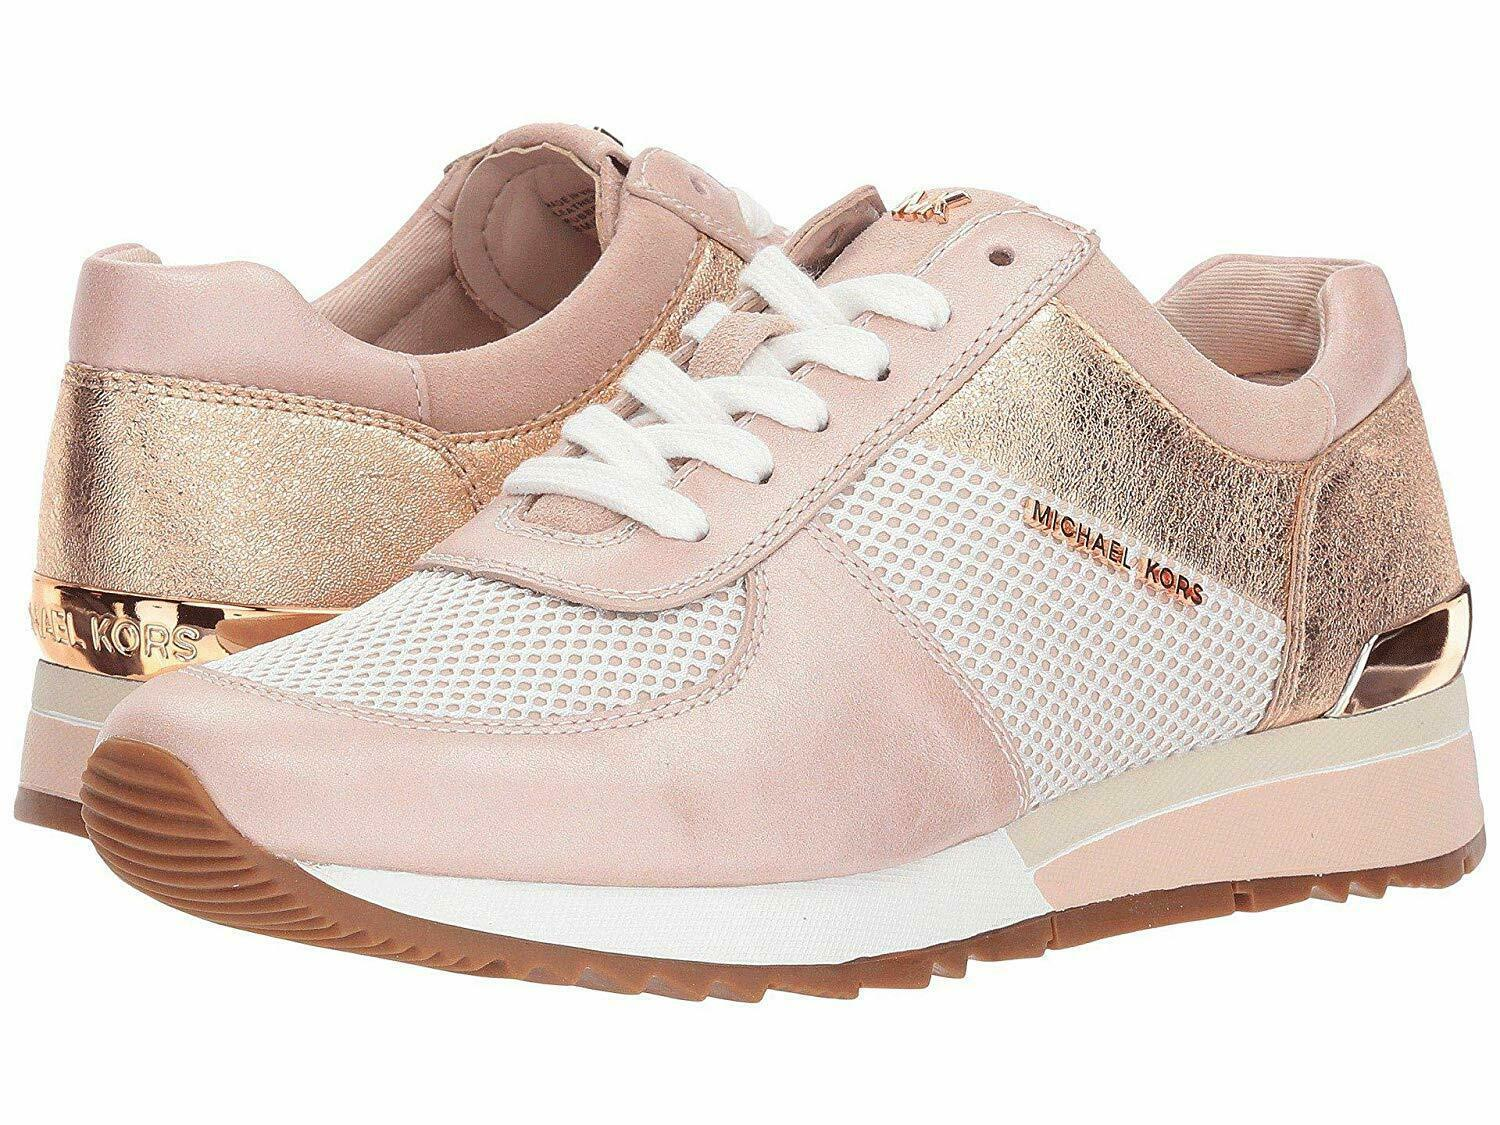 Michael Kors MK Women's Allie Trainer Leather Sneakers Shoes Soft Pink